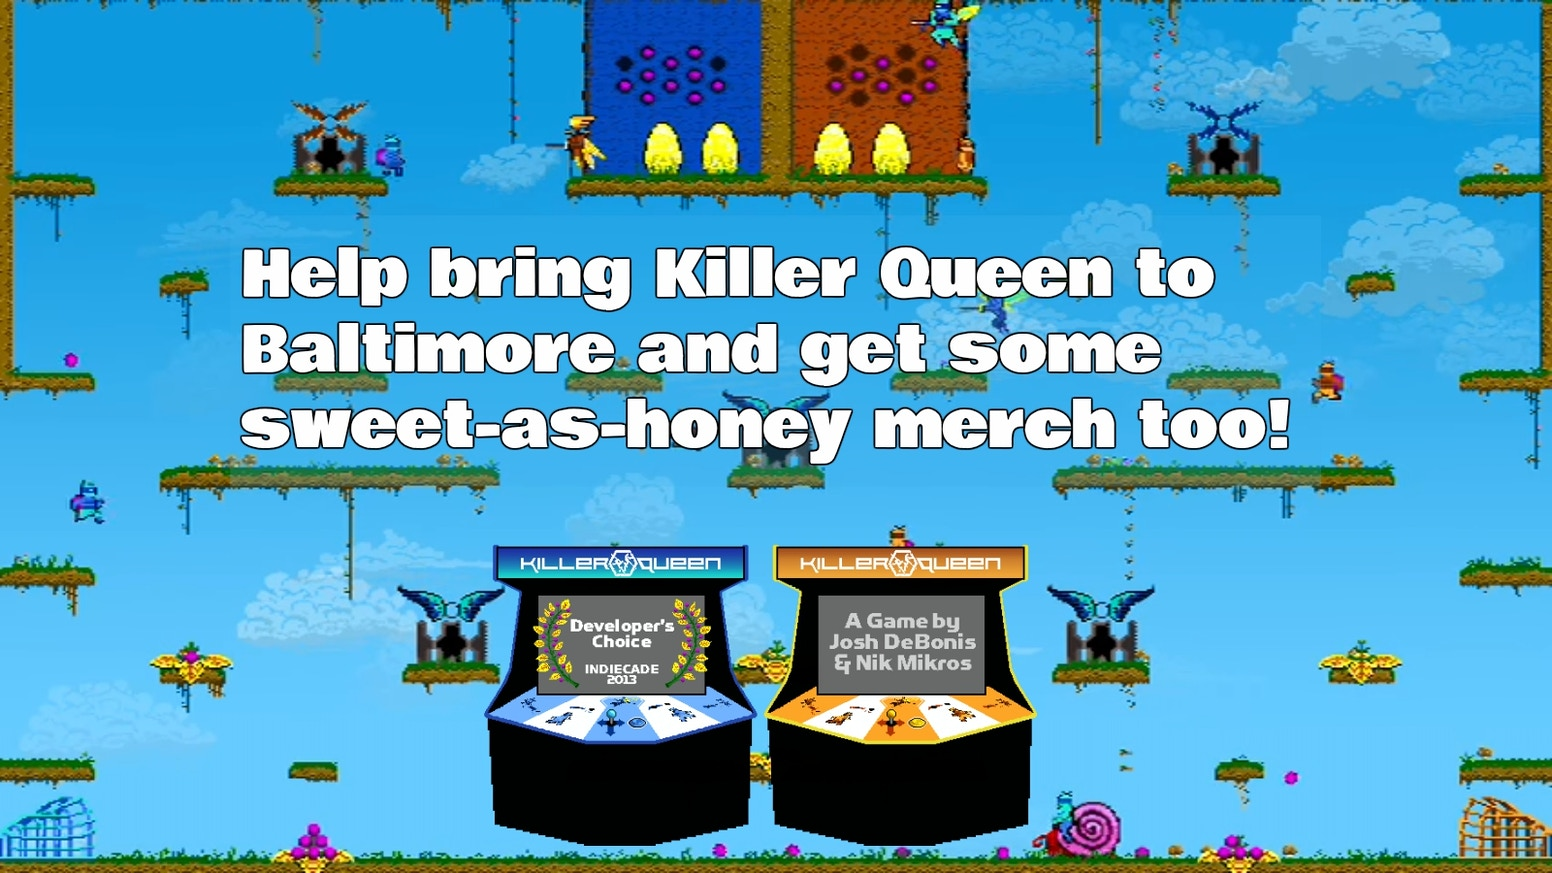 Addictive 5 v 5 strategy arcade game, Killer Queen, is coming to Holy Frijoles in Hampden. Help us get it here and earn cool merch.